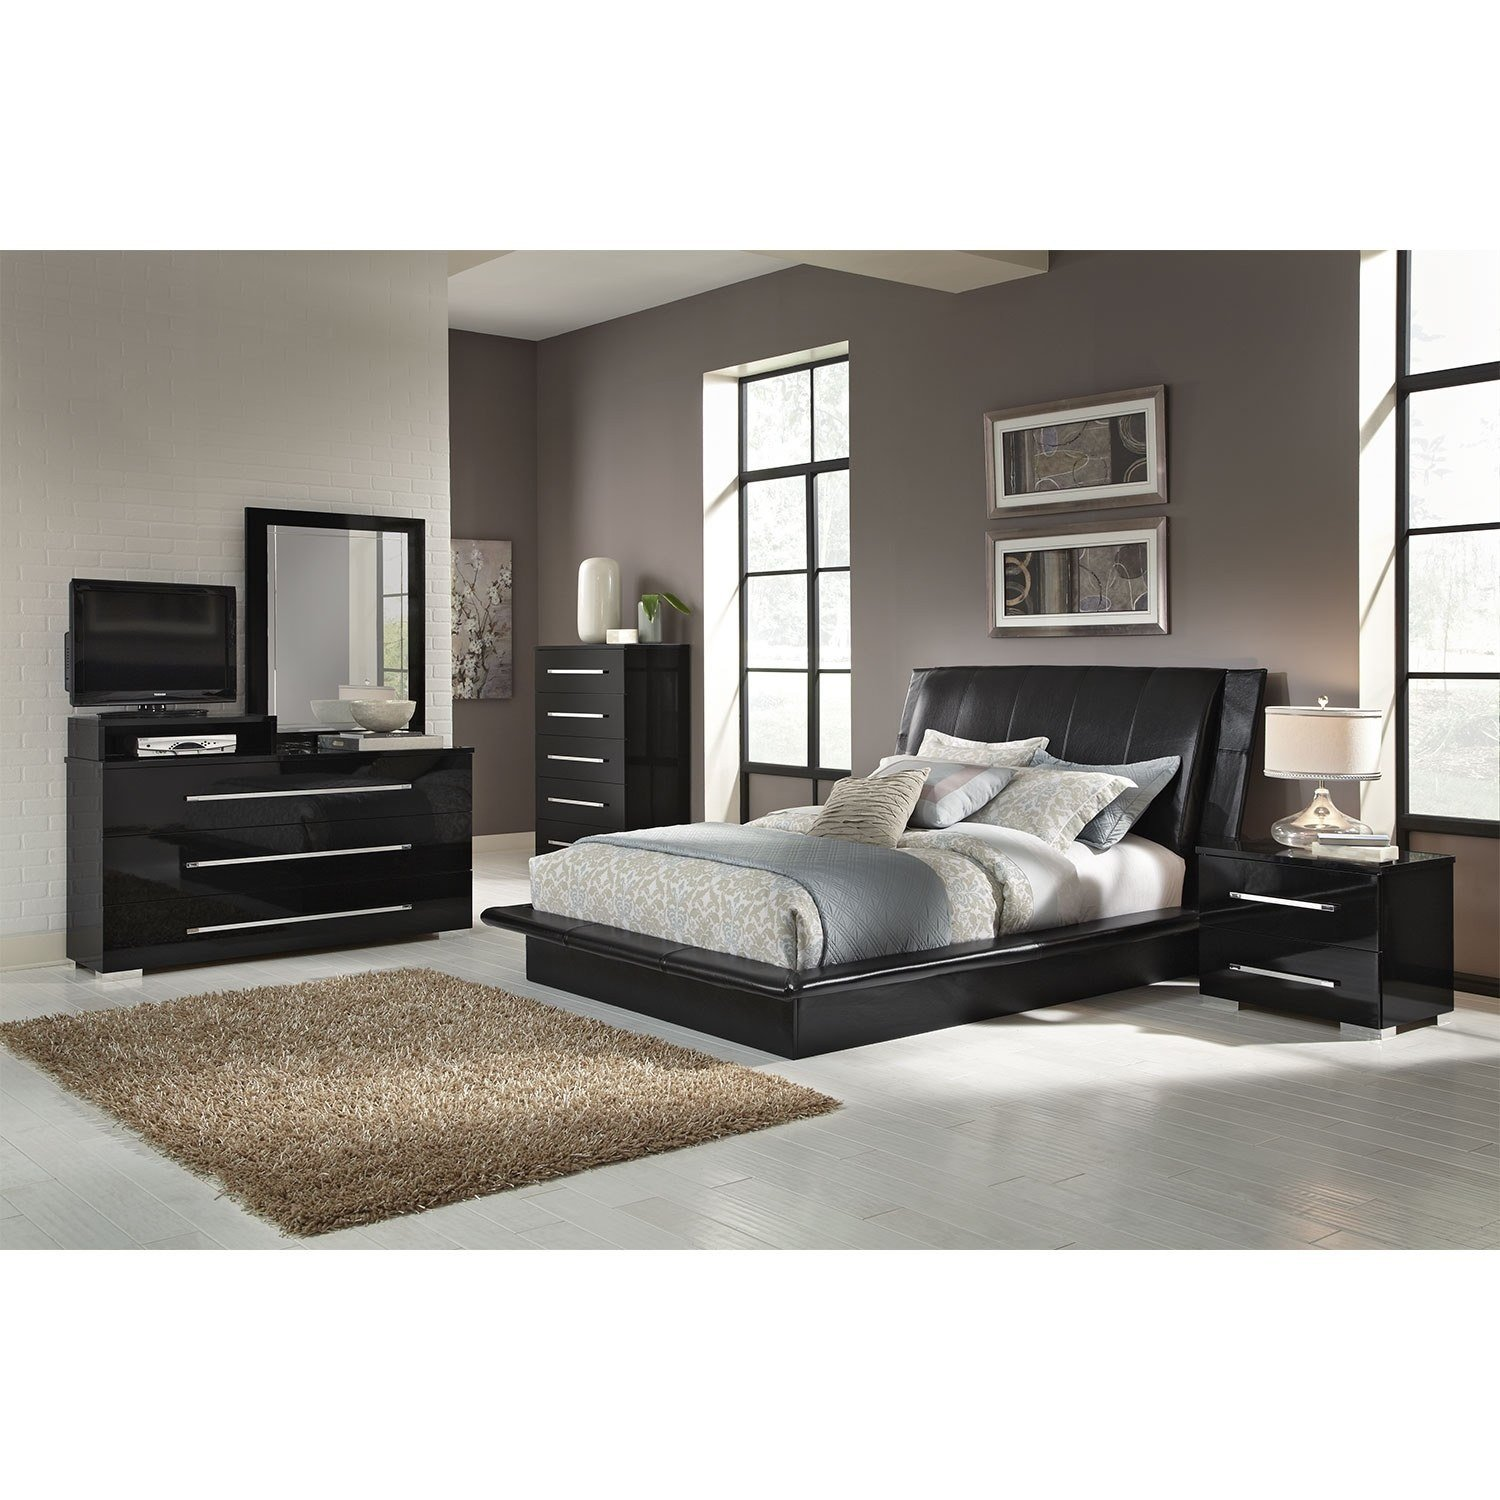 Best Dimora Black 7 Pc Queen Bedroom Value City Furniture With Pictures